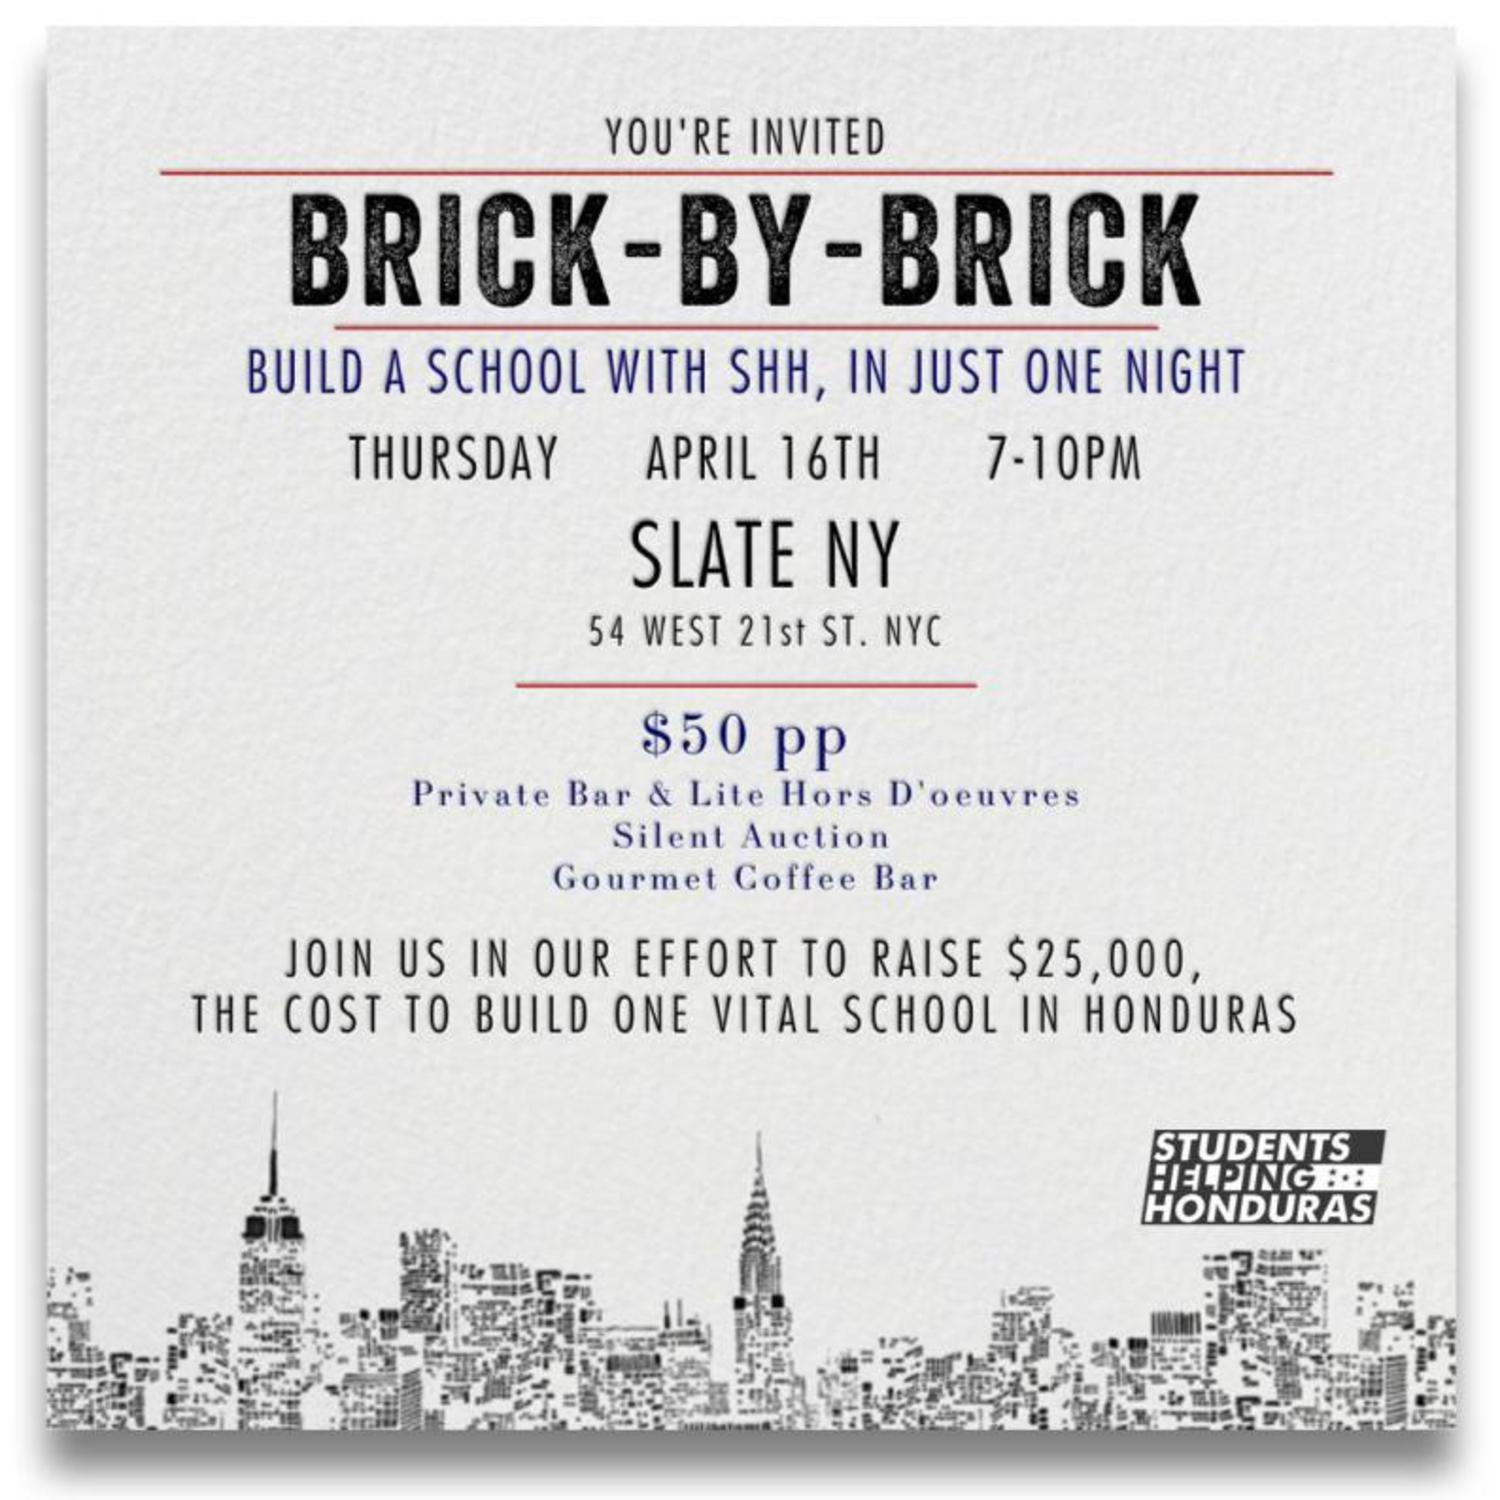 Students Helping Honduras BRick by Brick Fundraiser